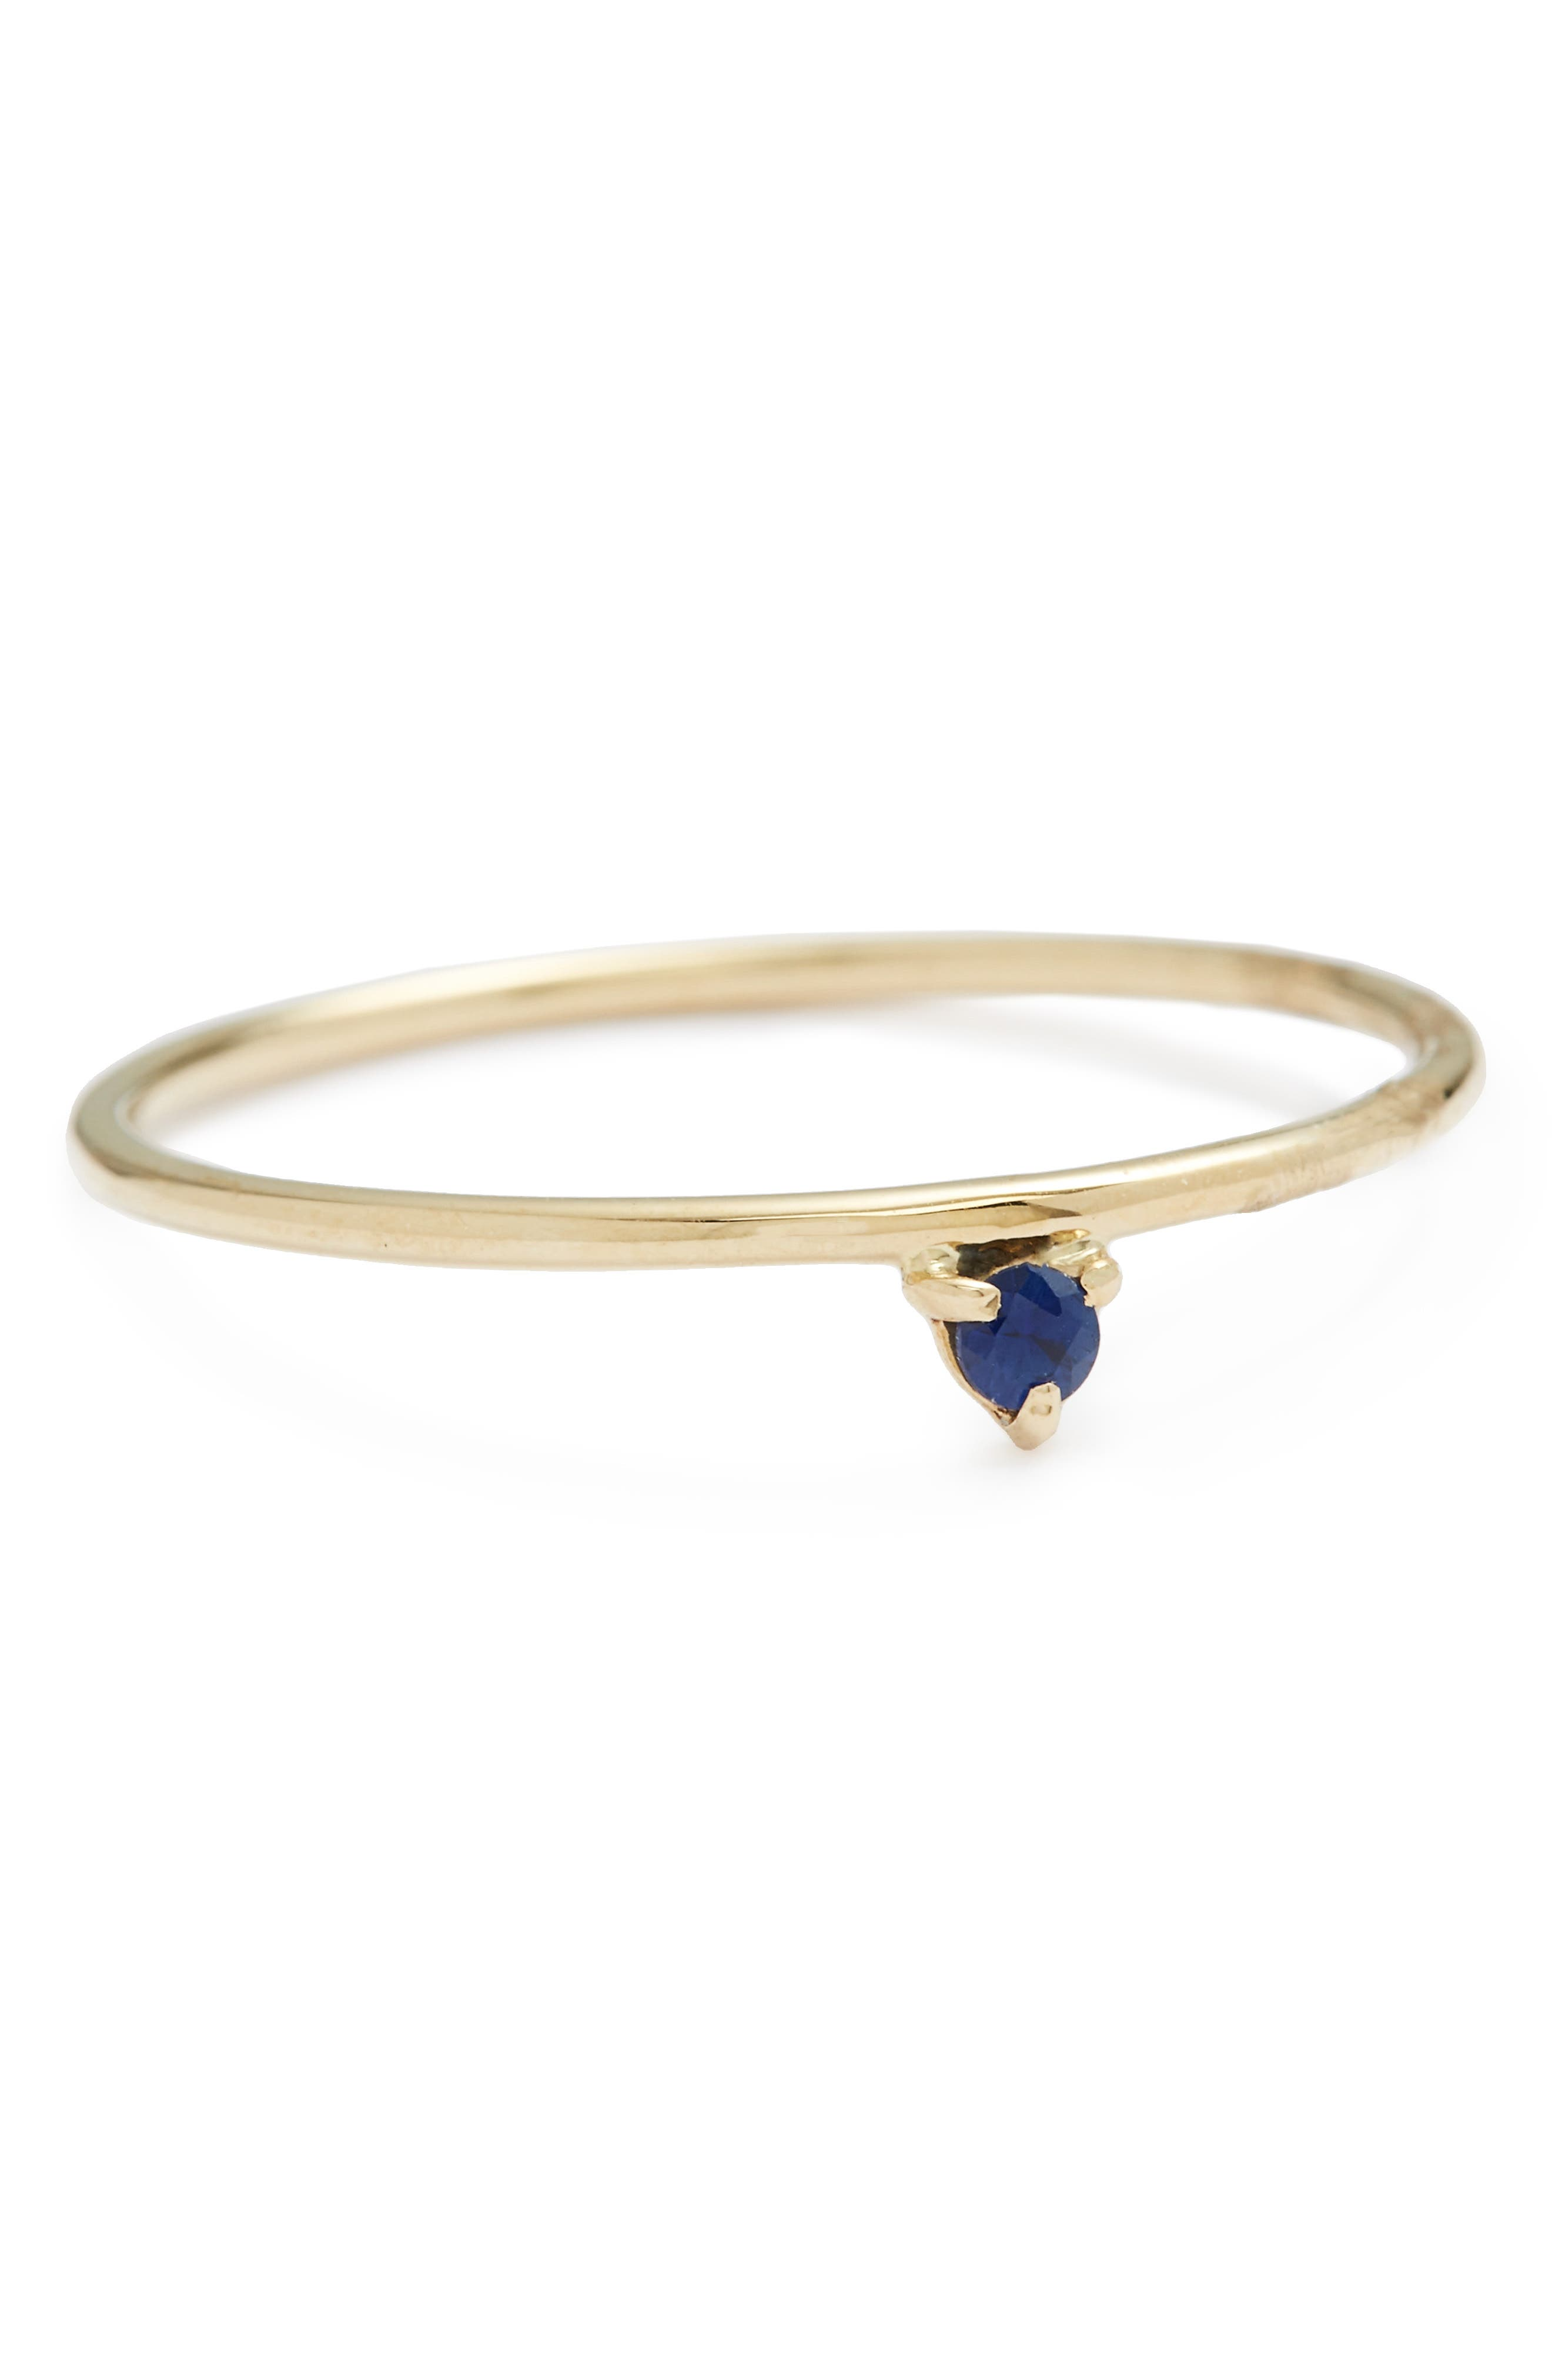 One Step Ring,                         Main,                         color, YELLOW GOLD